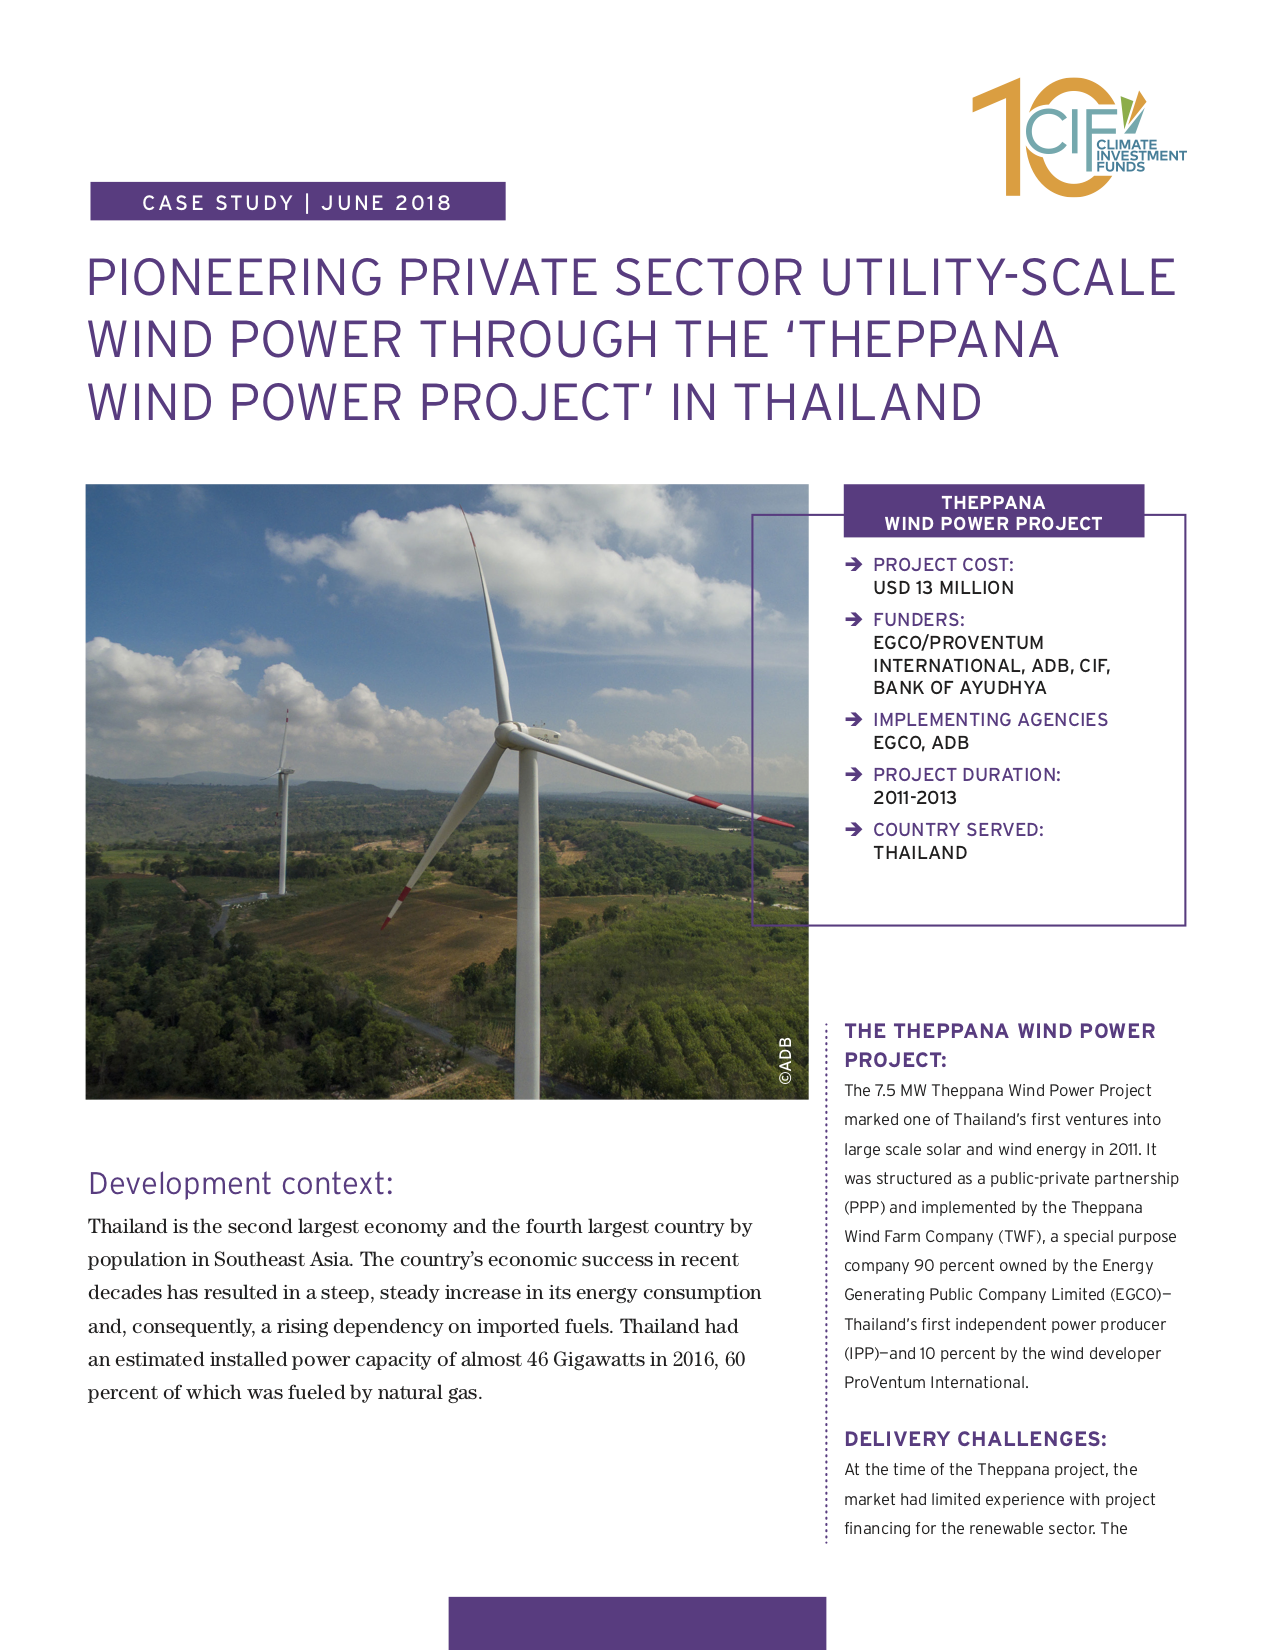 Pioneering private sector utility-scale wind power through the